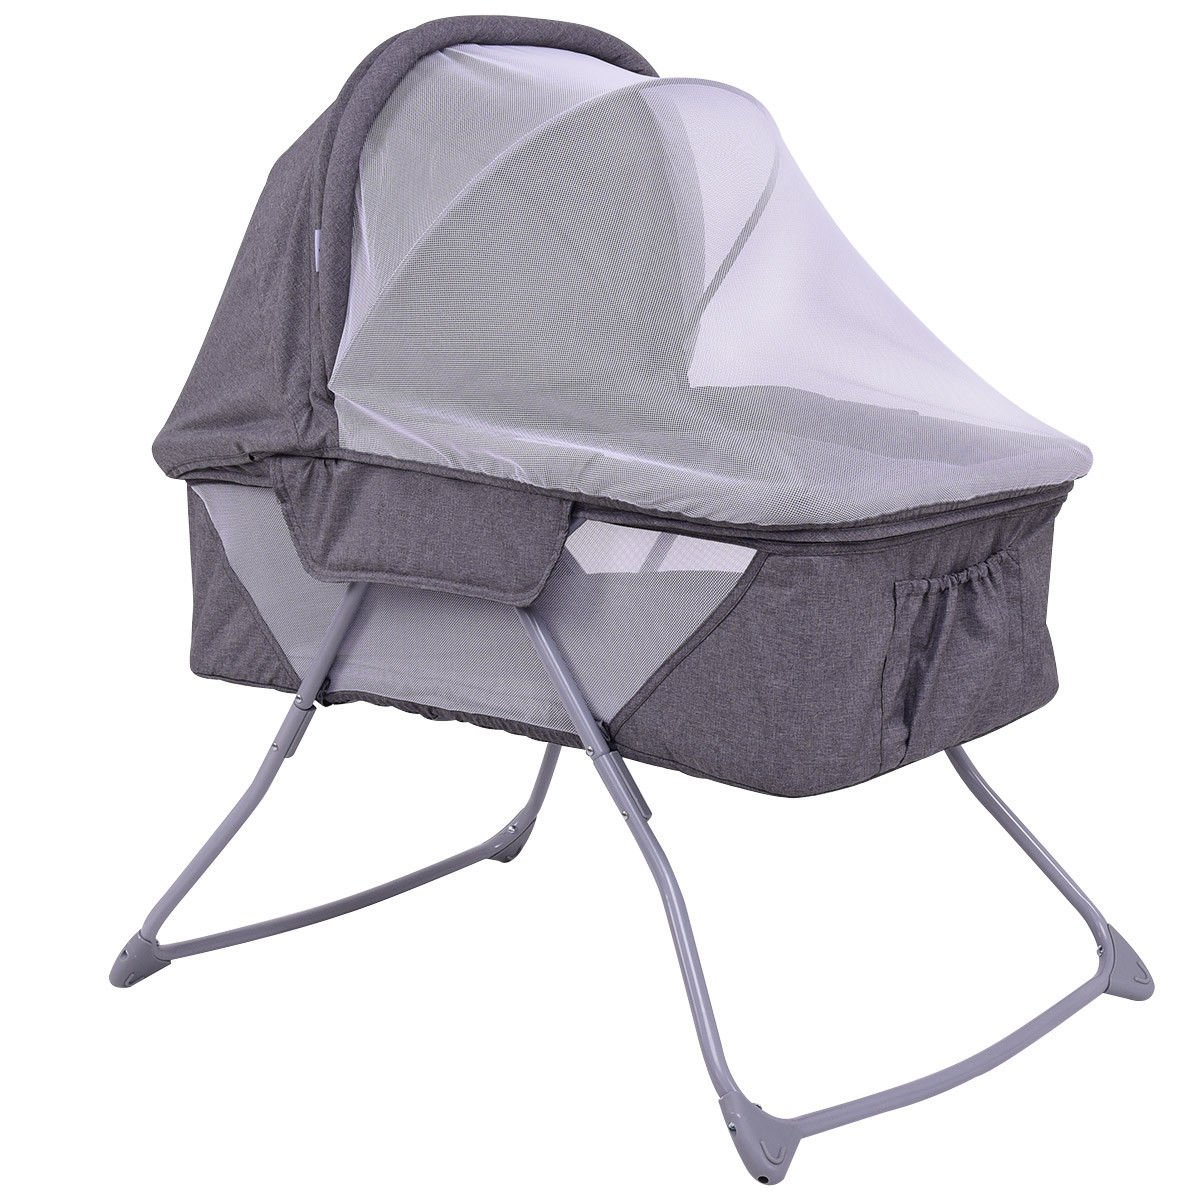 Costzon Baby Bassinet, Foldable Rocking Bed with Mosquito Net & Carrying Bag (Gray)